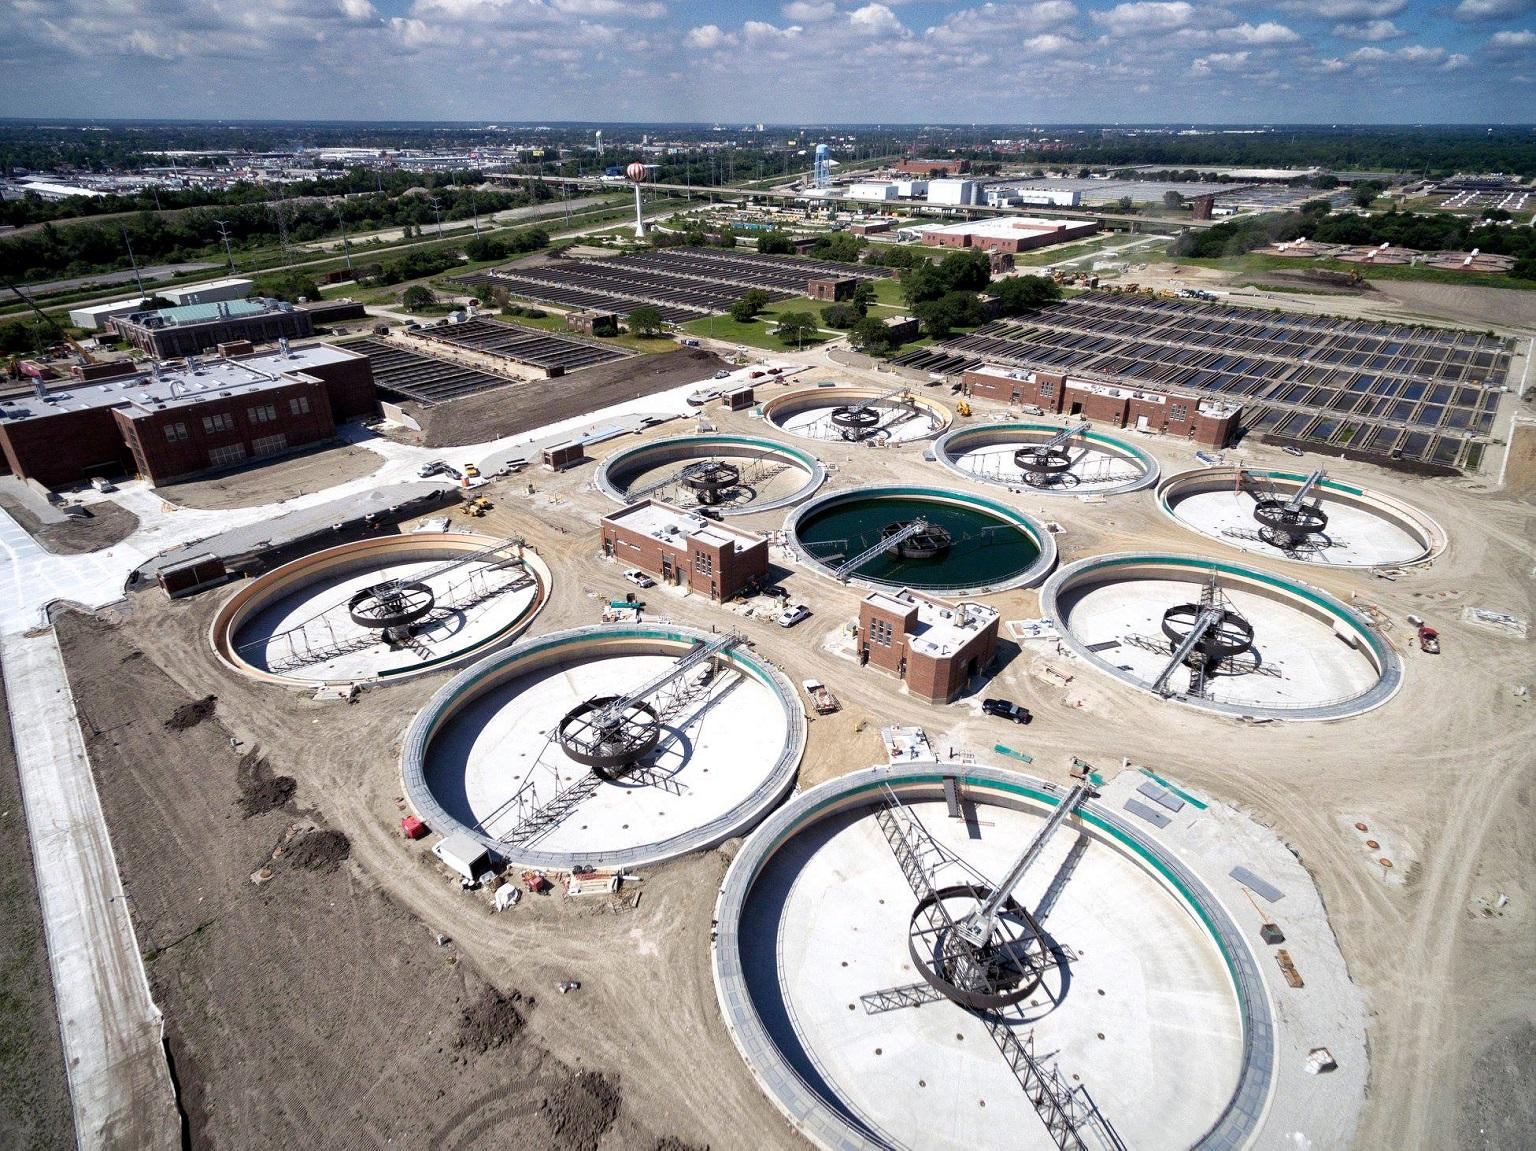 MWRD says that new primary settling tanks at its Stickney Water Reclamation Plant are lowering its carbon footprint by trapping methane emissions and generating energy that can be returned to the plant. (Courtesy Metropolitan Water Reclamation District of Greater Chicago)